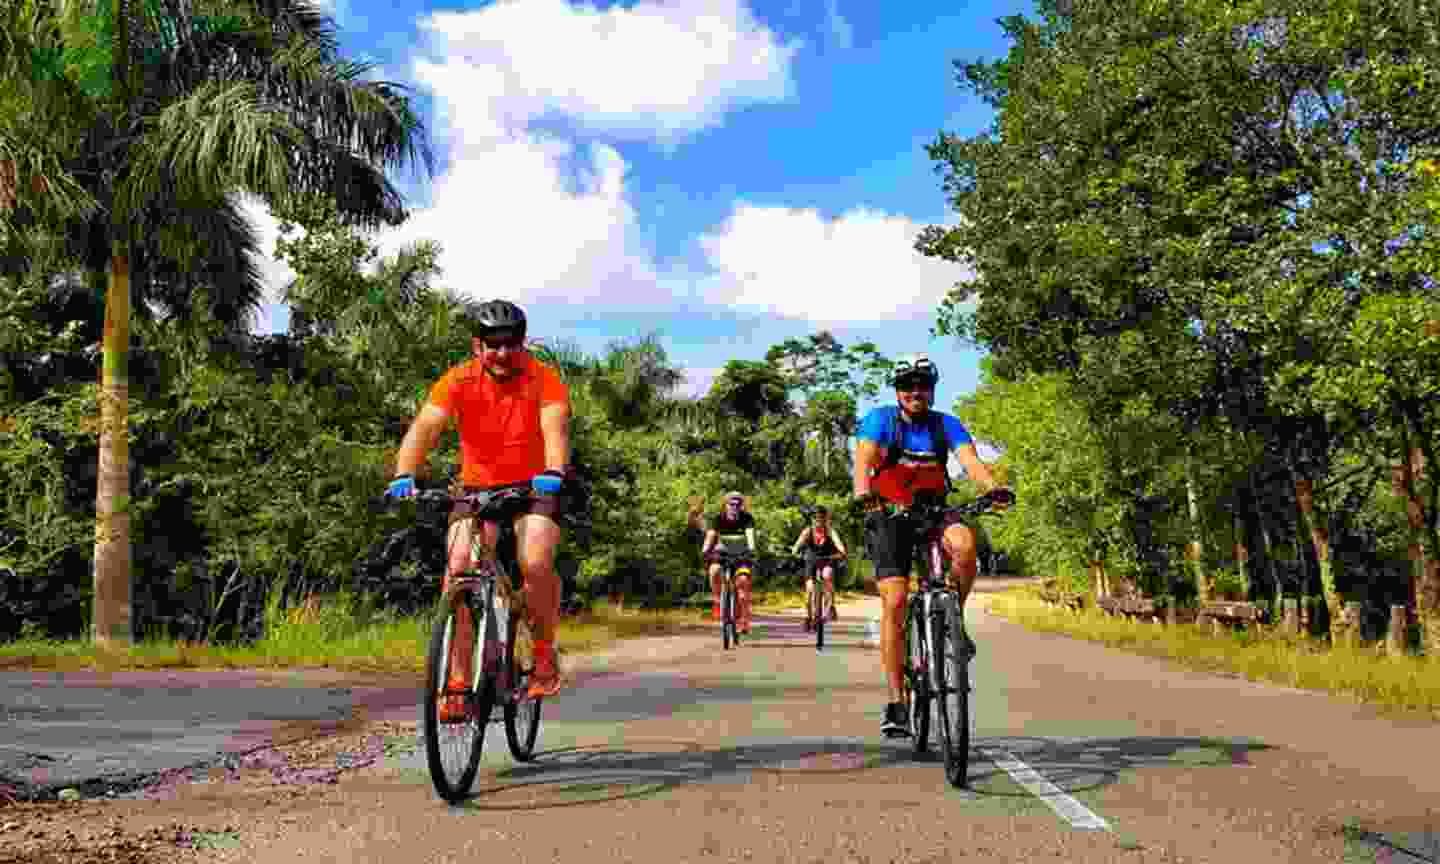 Cyclists outside Las Terrazas (Intrepid)